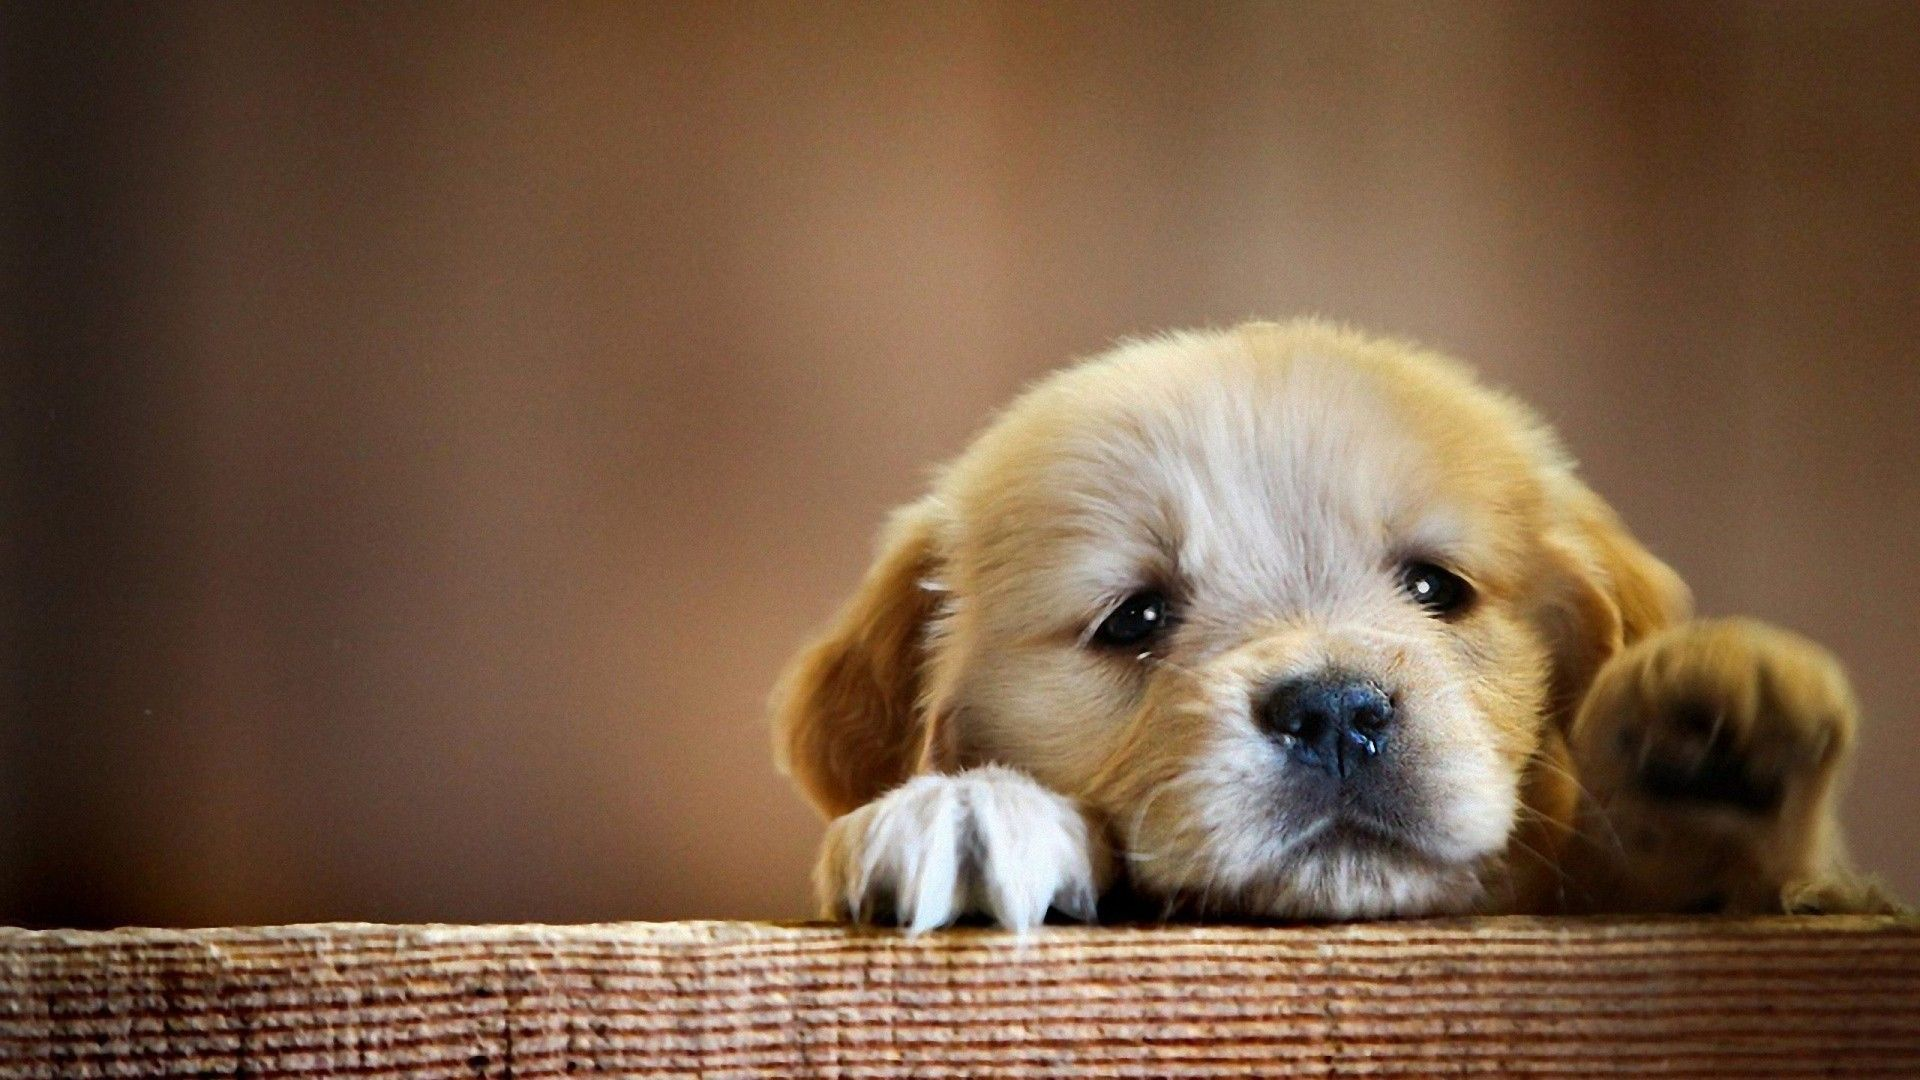 Hd Puppy Wallpapers Top Free Hd Puppy Backgrounds Wallpaperaccess